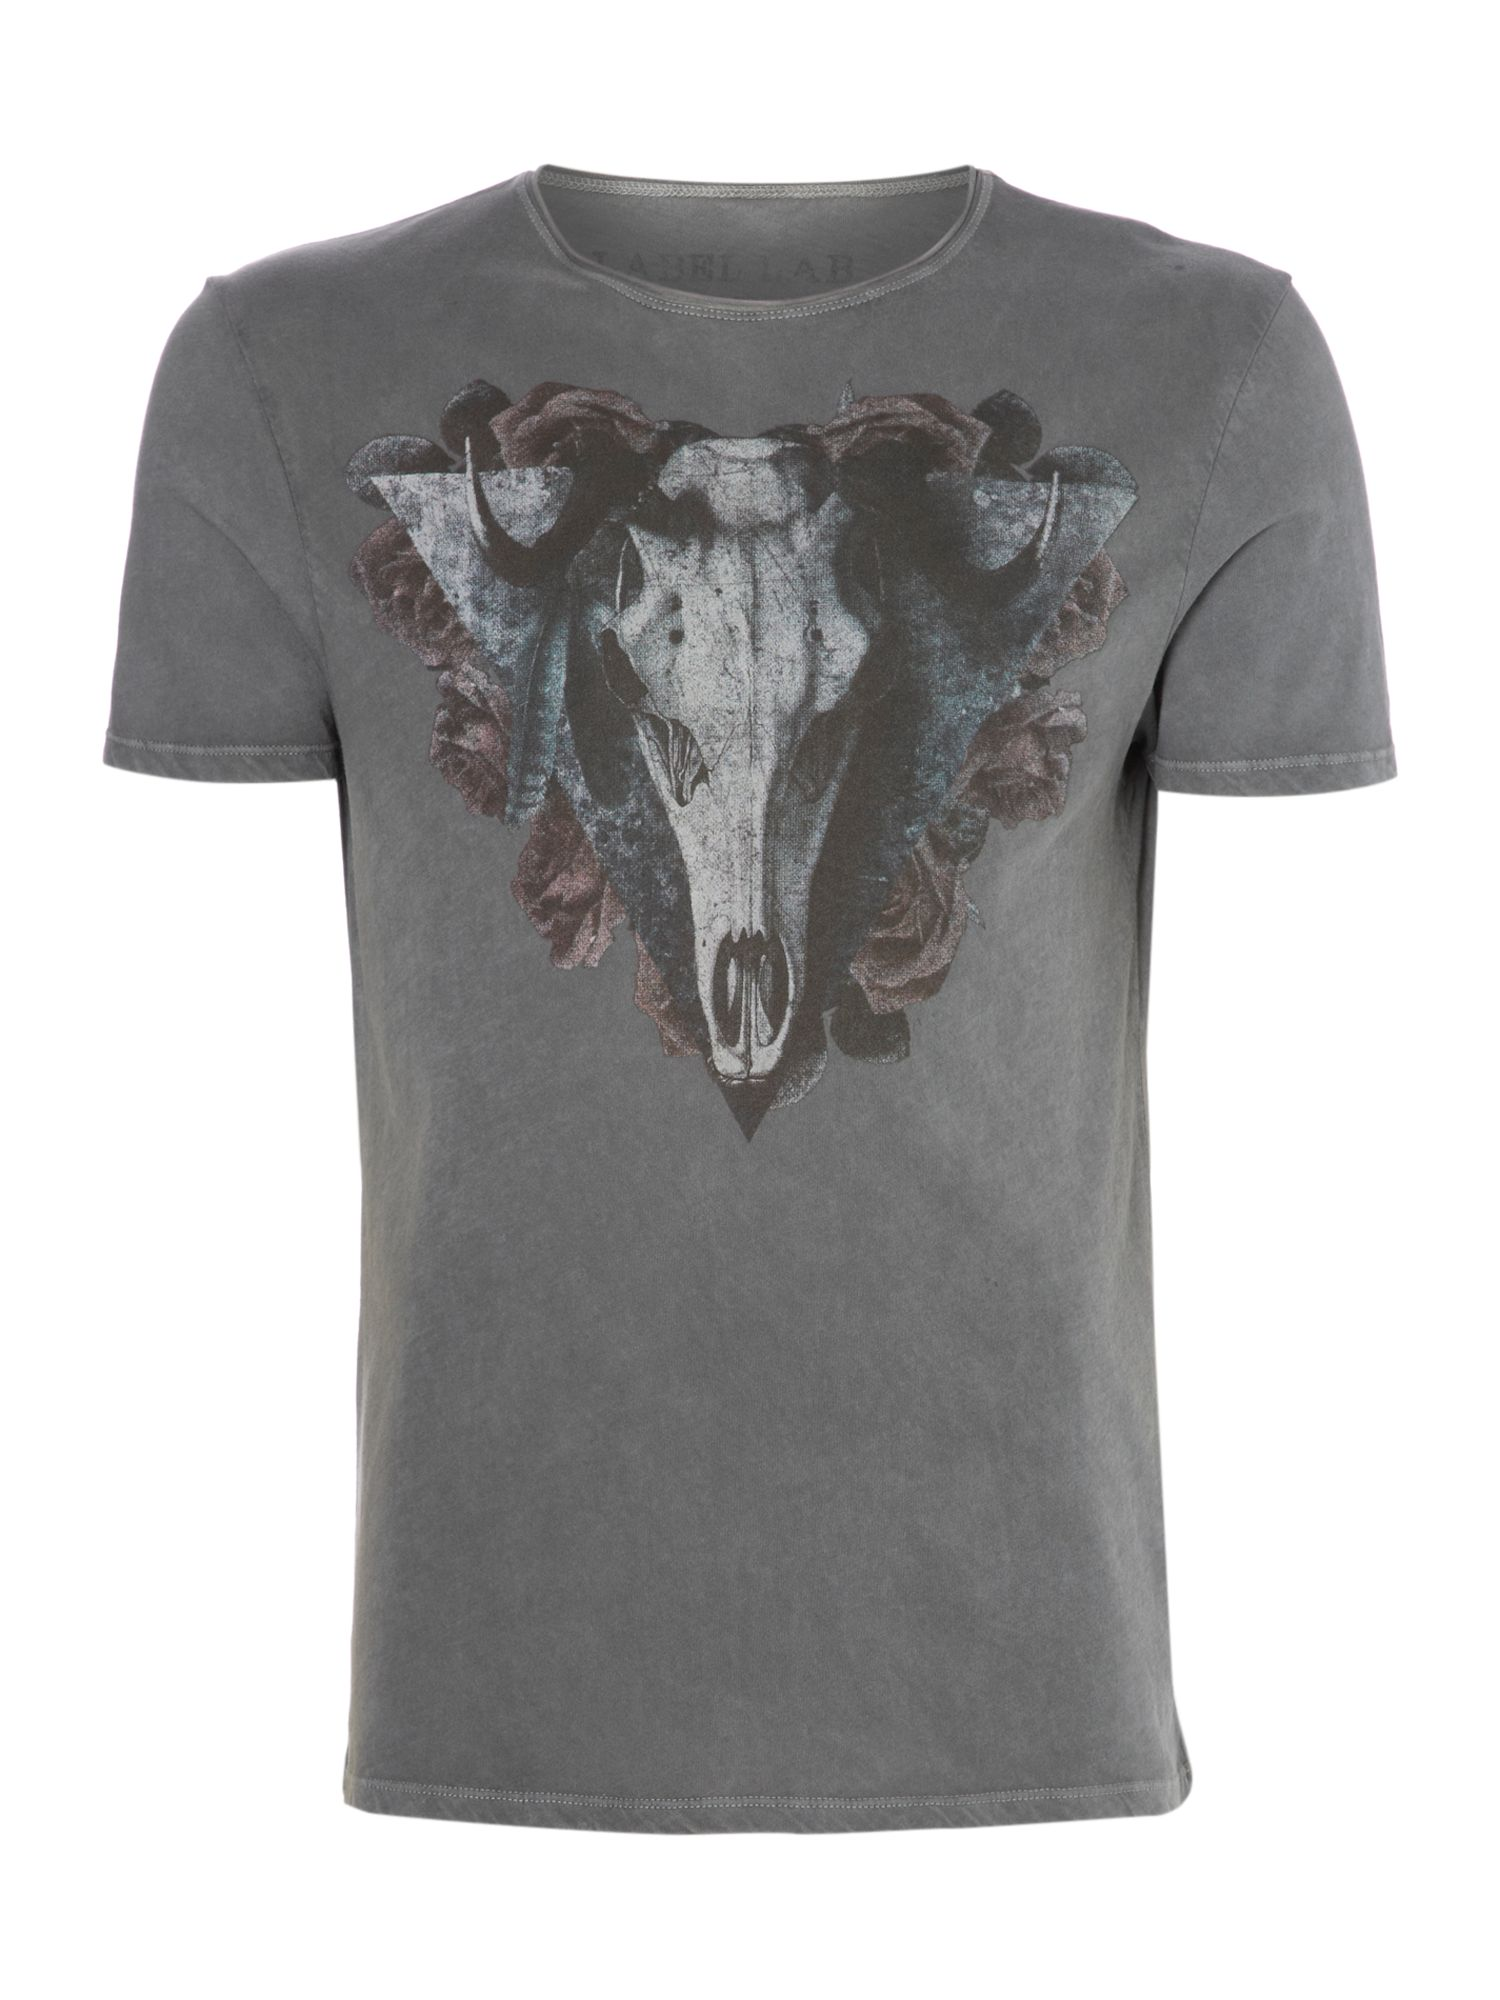 Horns graphic t-shirt